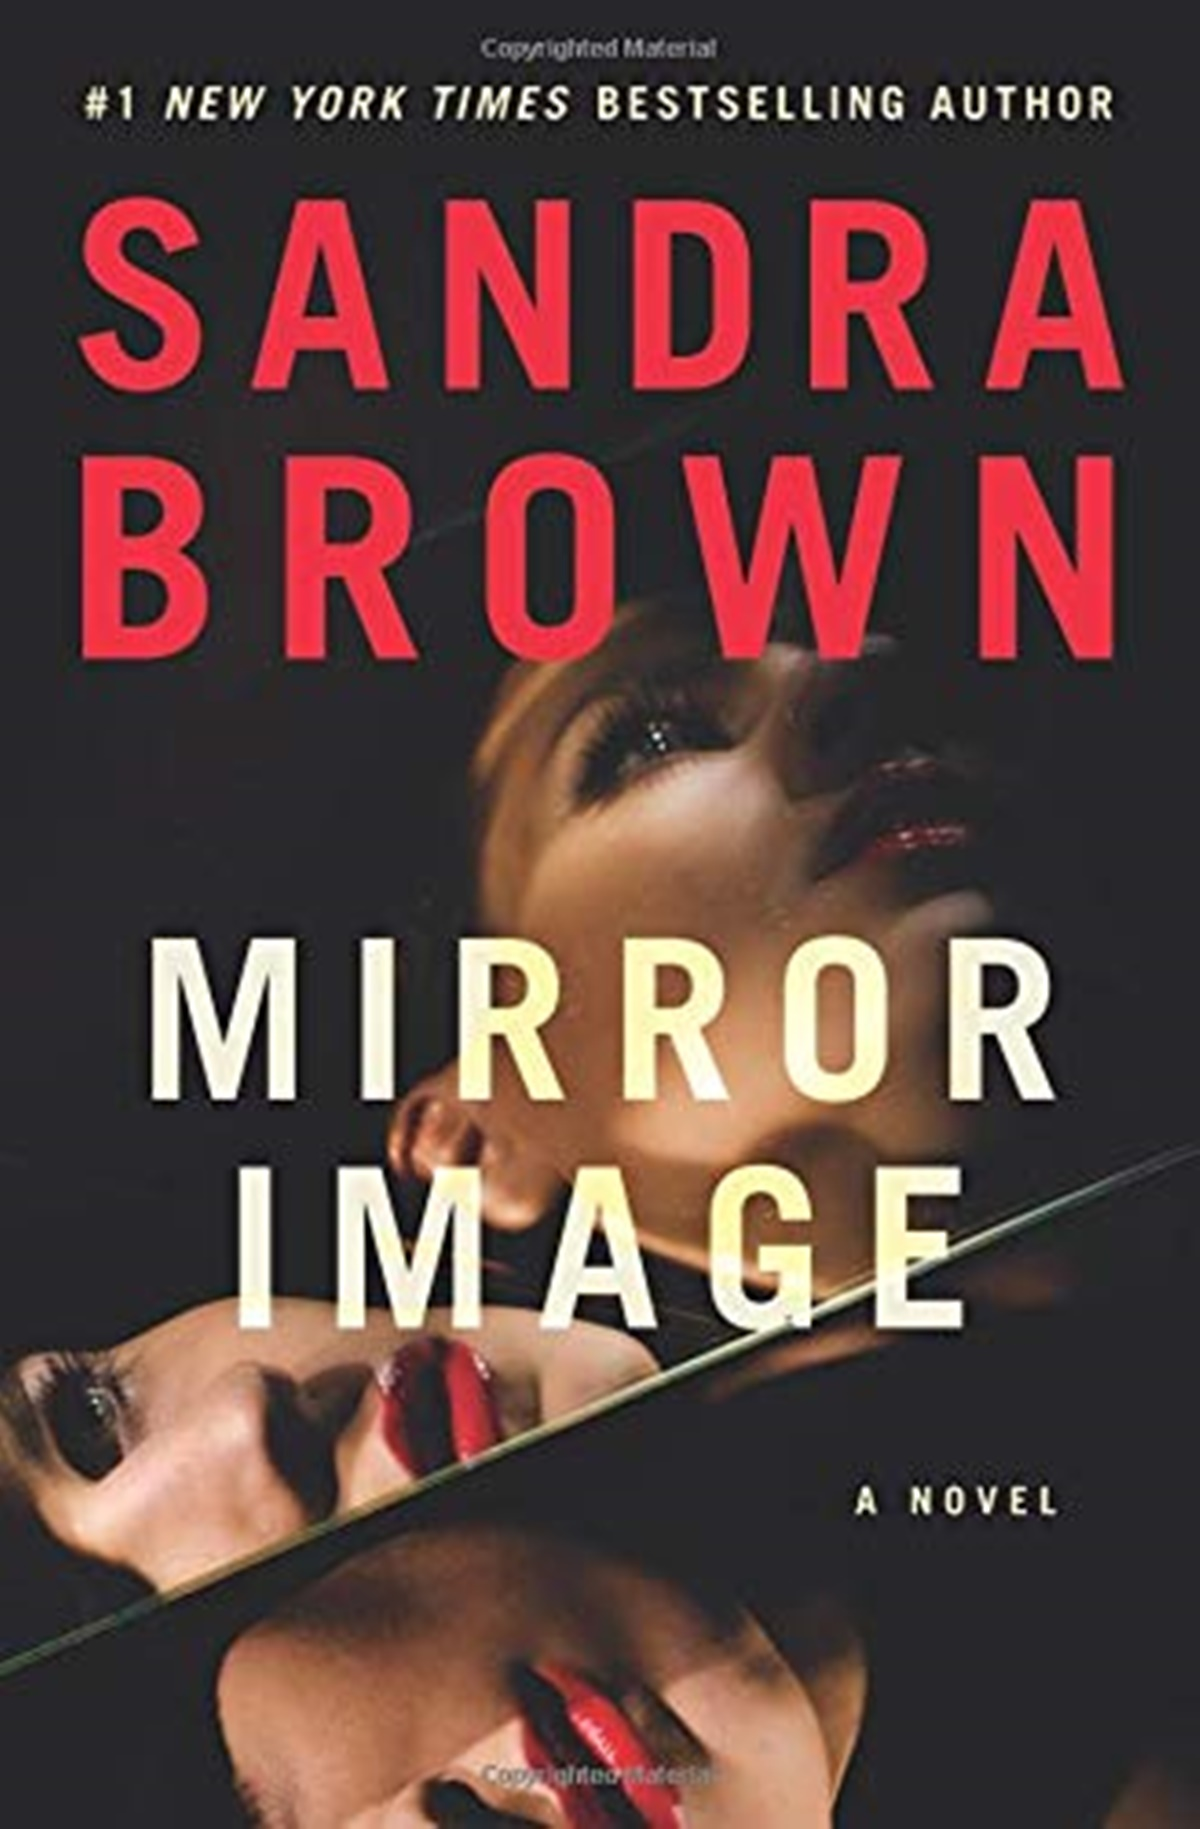 Sandra Brown Books, cover of Mirror Image by Sandra Brown, books